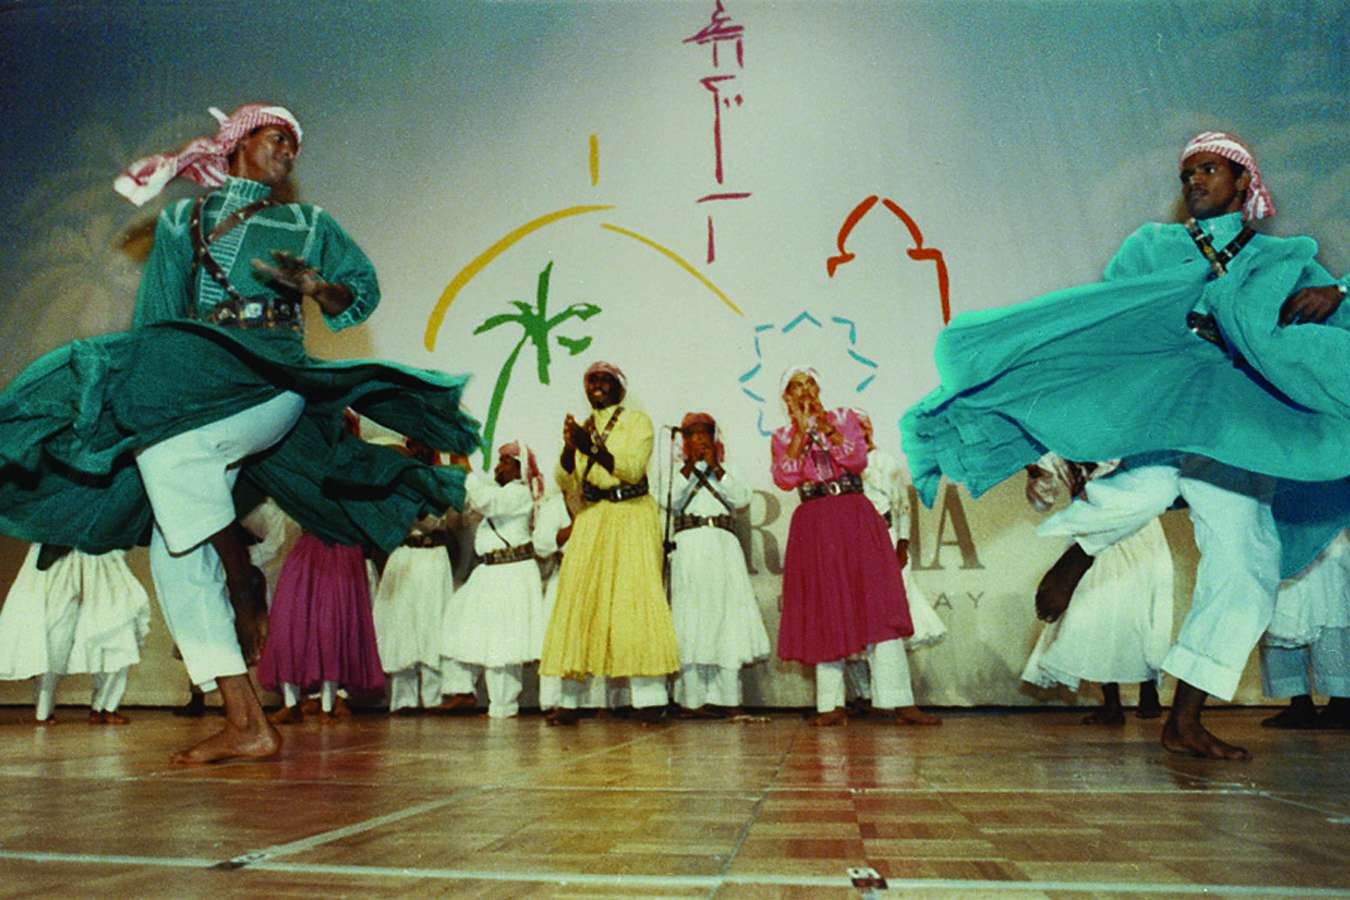 Ksa Dance : MAIN STAGE: Bedouin Dancers – 24-Man Troupe Performed 4 times Daily